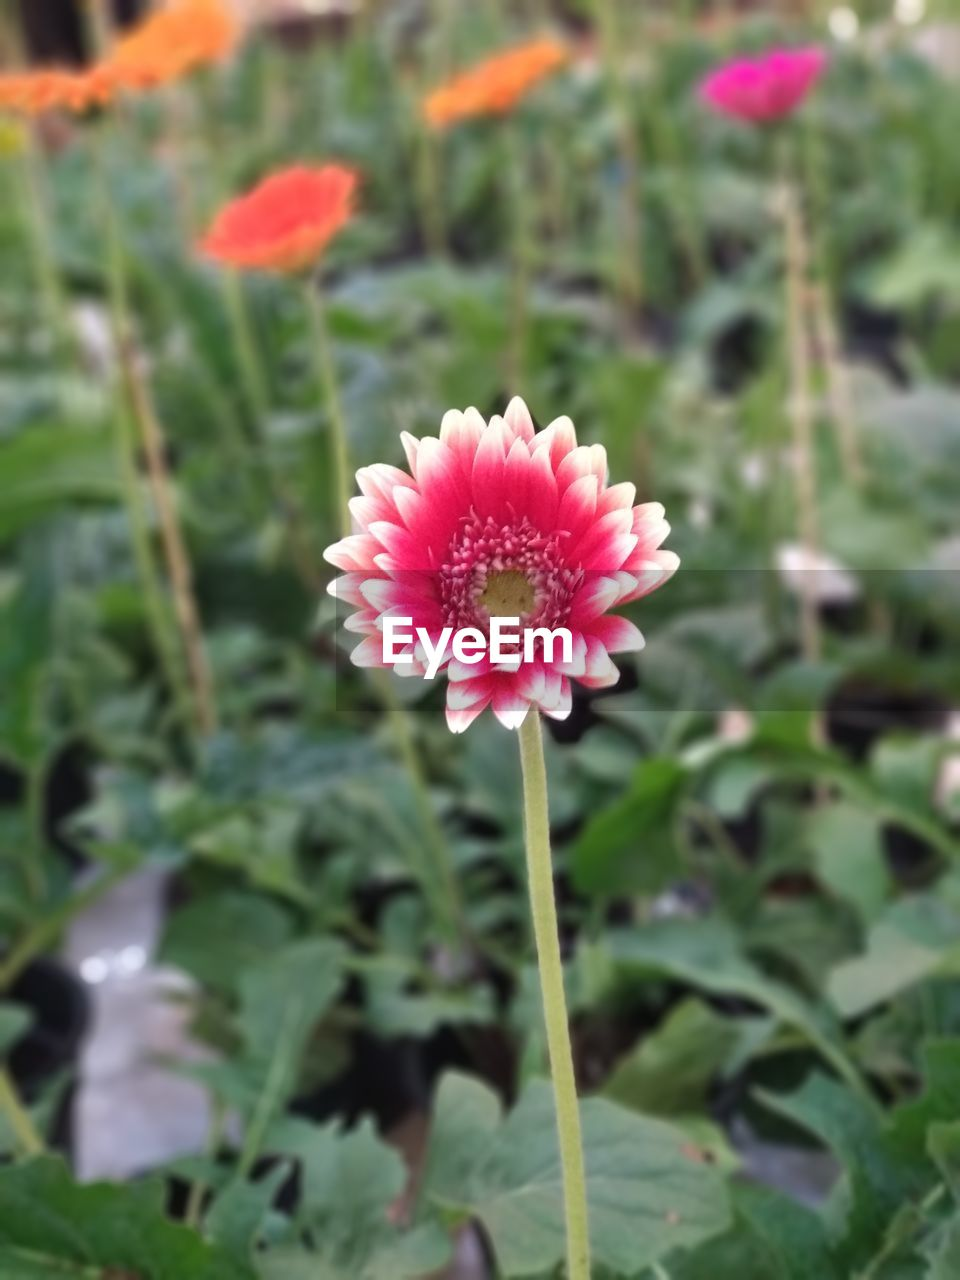 flower, beauty in nature, fragility, nature, petal, growth, flower head, freshness, plant, blooming, pink color, close-up, green color, outdoors, day, no people, focus on foreground, leaf, zinnia